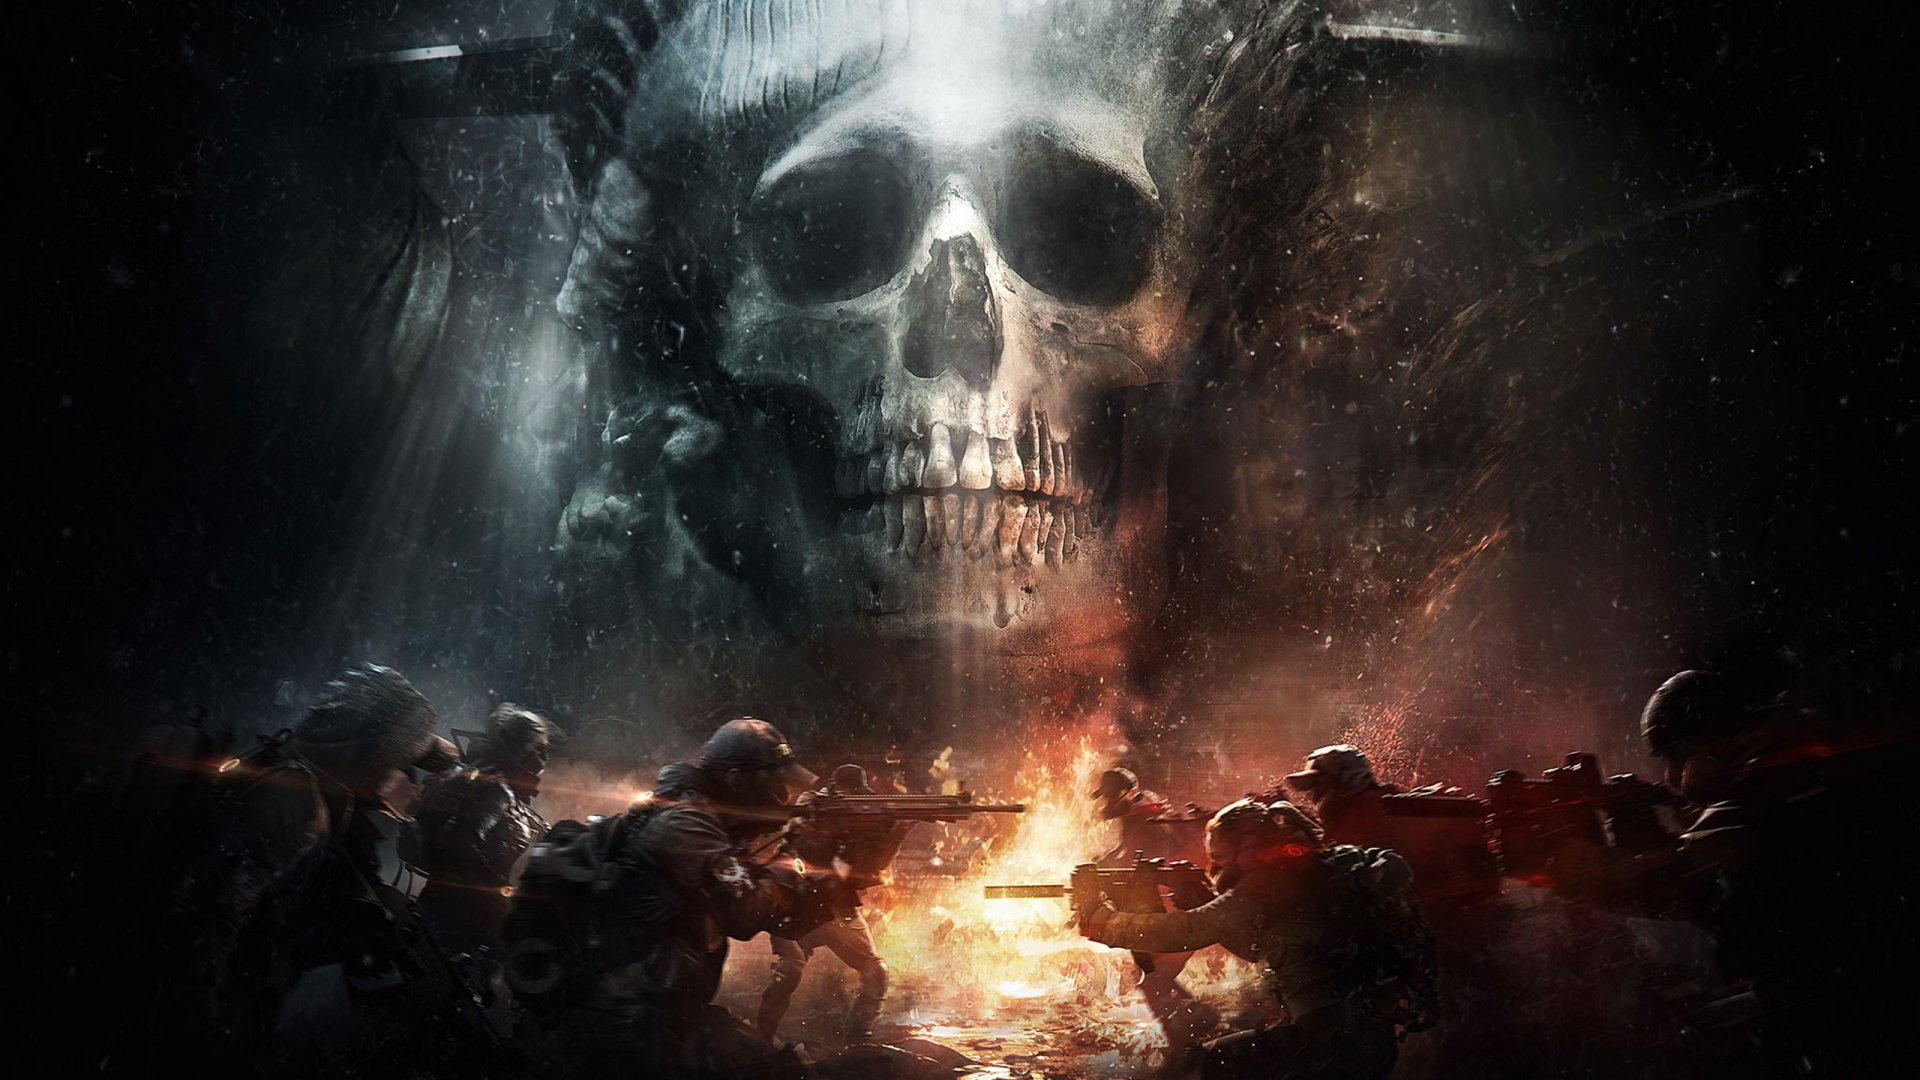 Video Game - Tom Clancy's The Division  Soldier Skull Gun Wallpaper